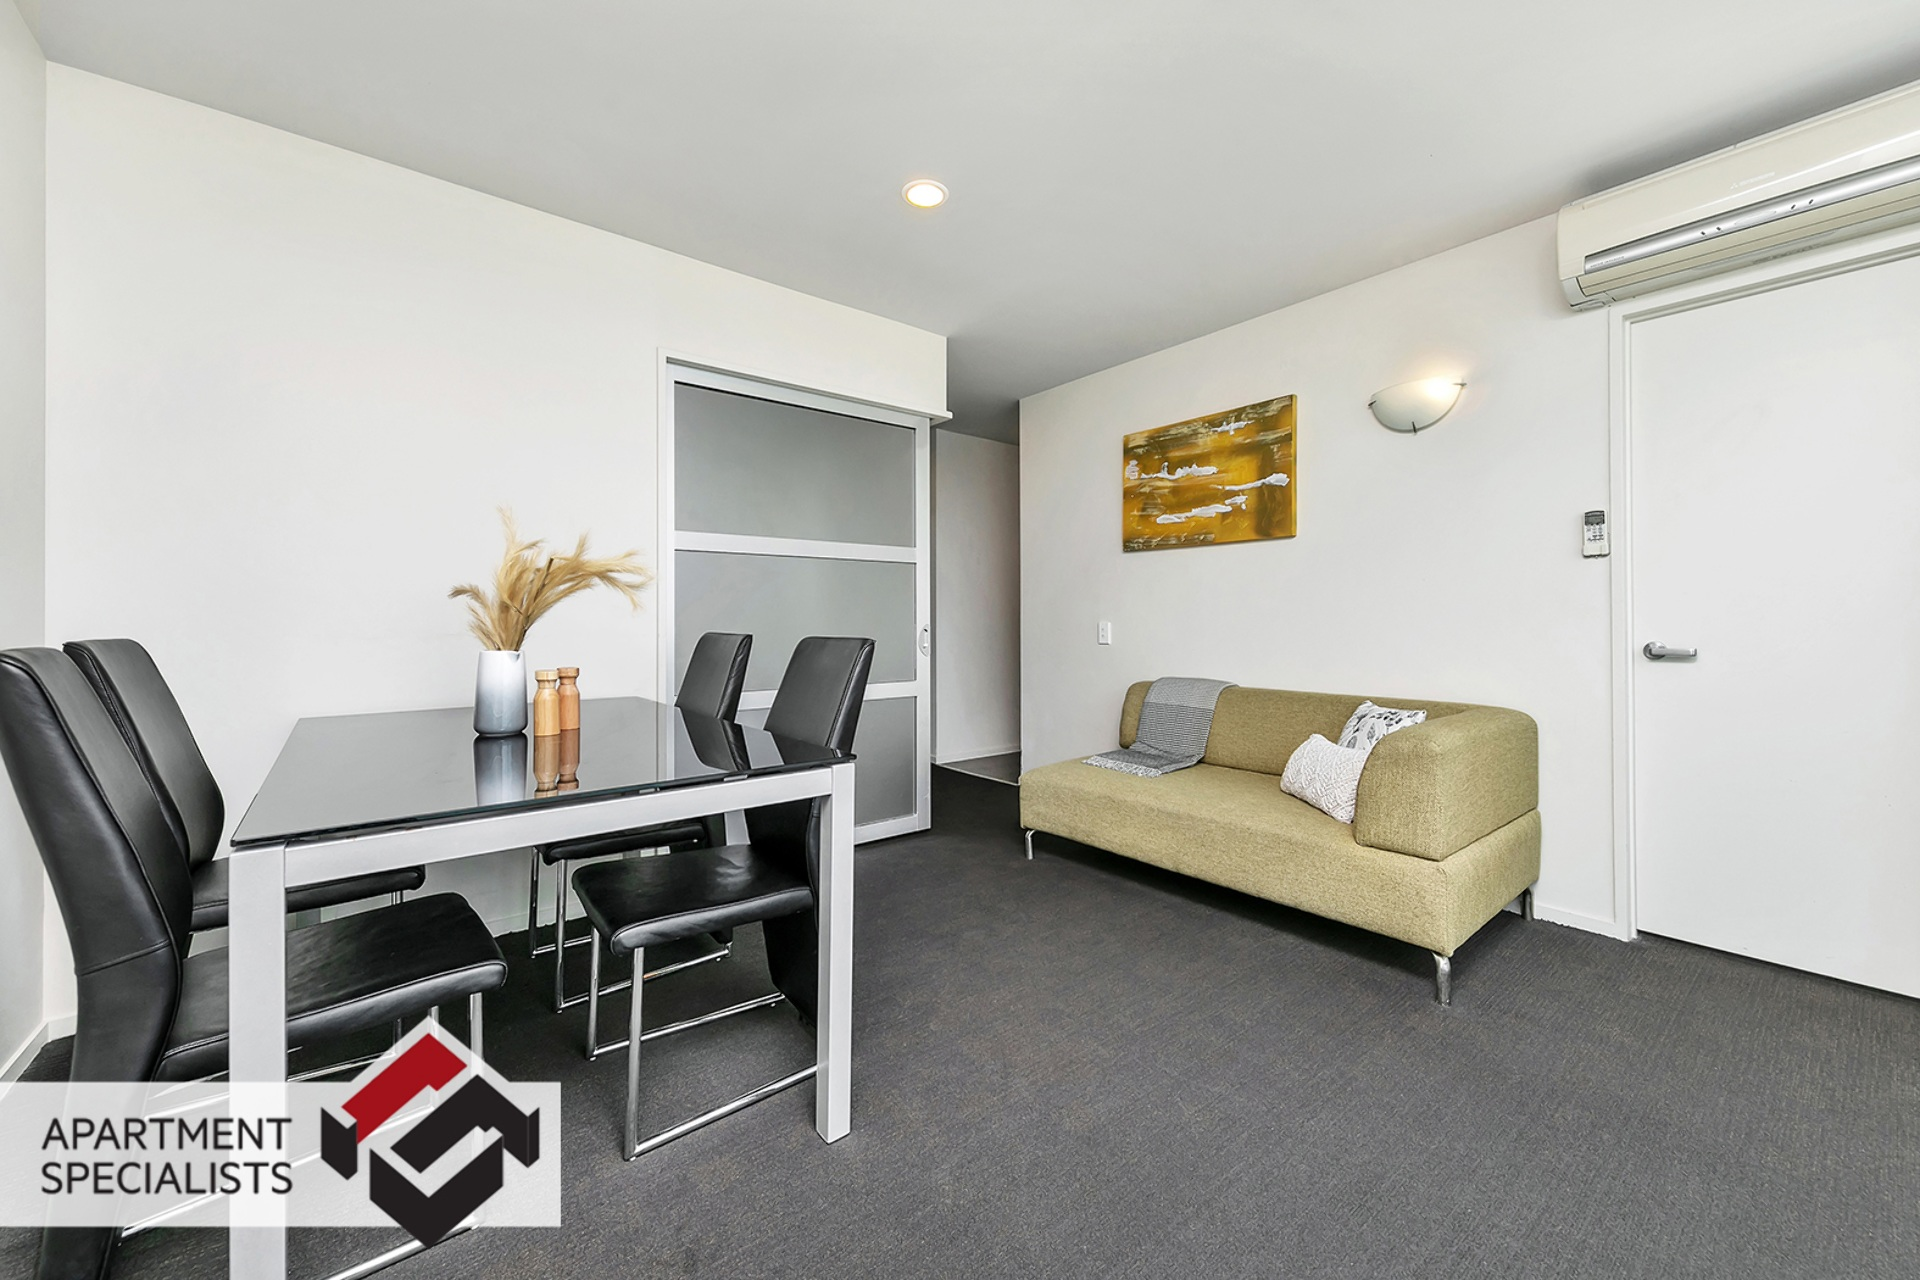 4 | 10 Waterloo Quadrant, City Centre | Apartment Specialists